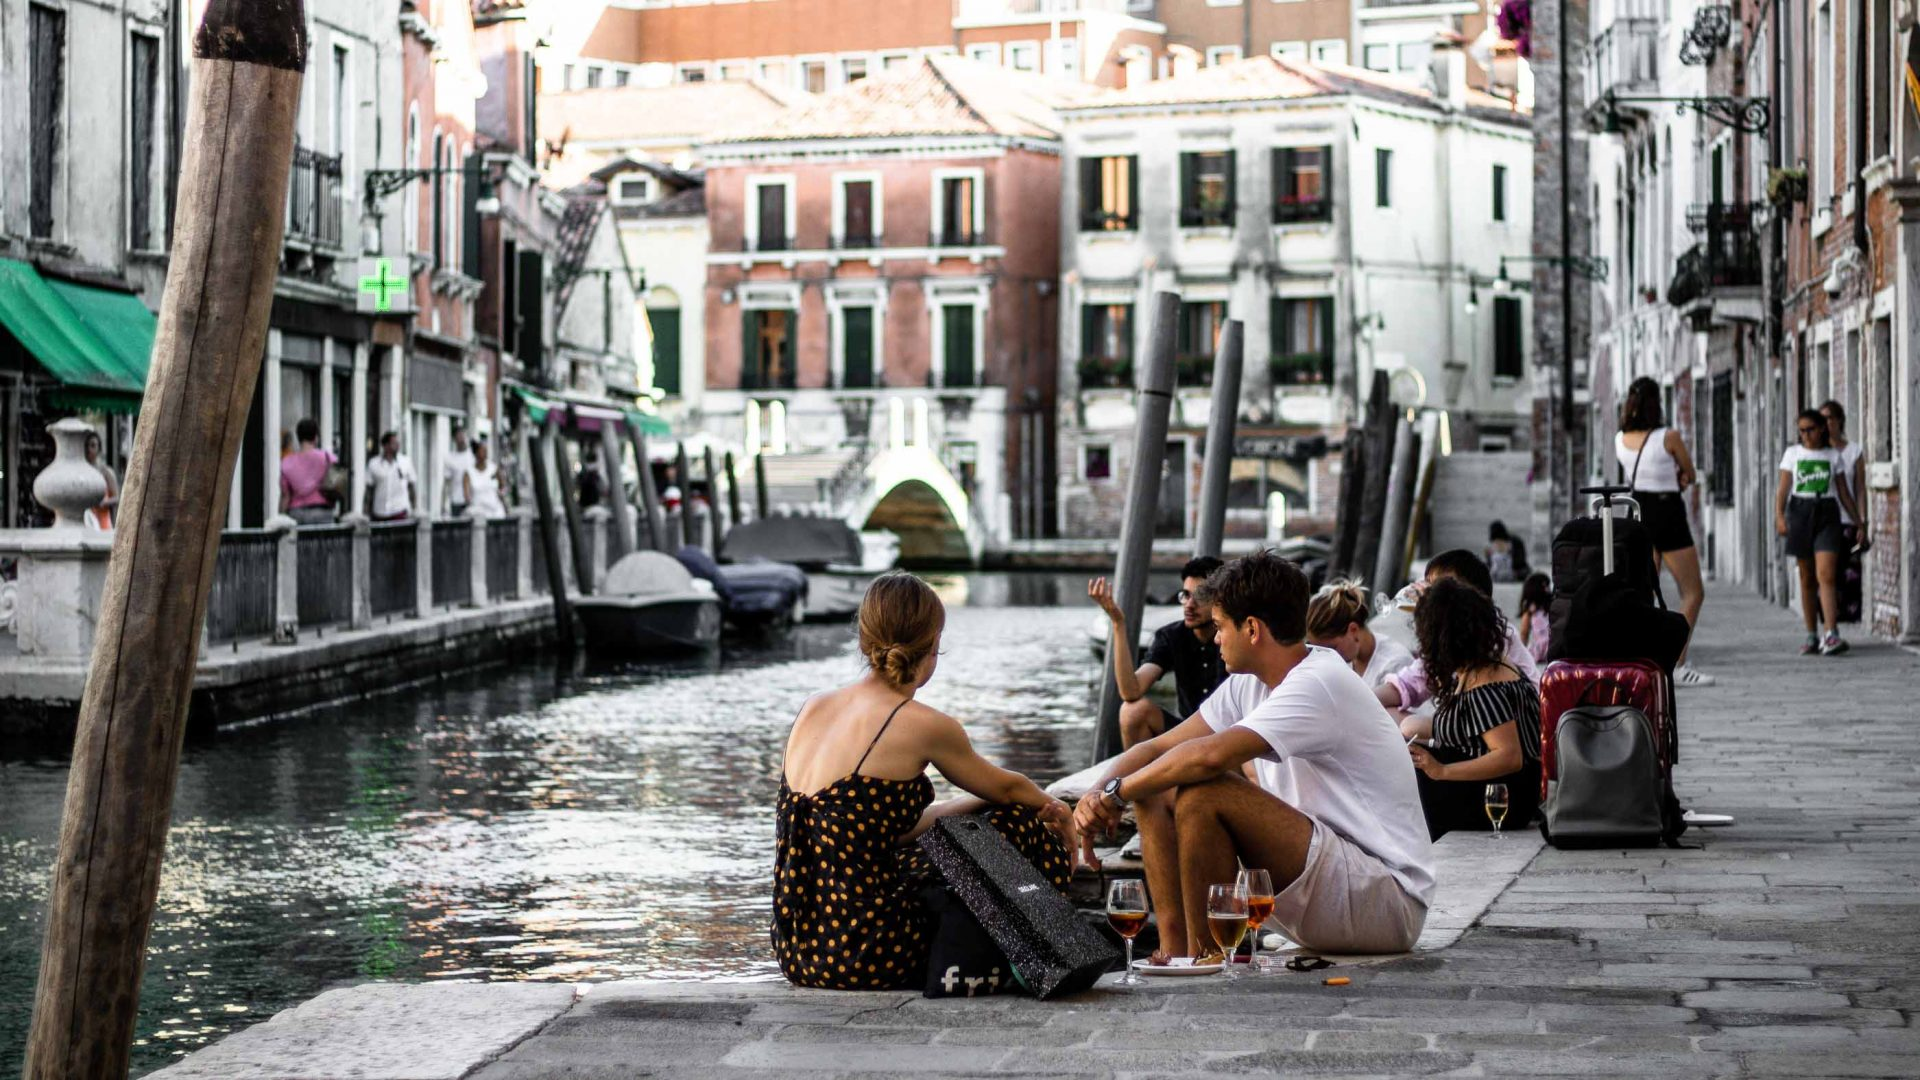 Tourists sit alongside one of the canals in Venice.